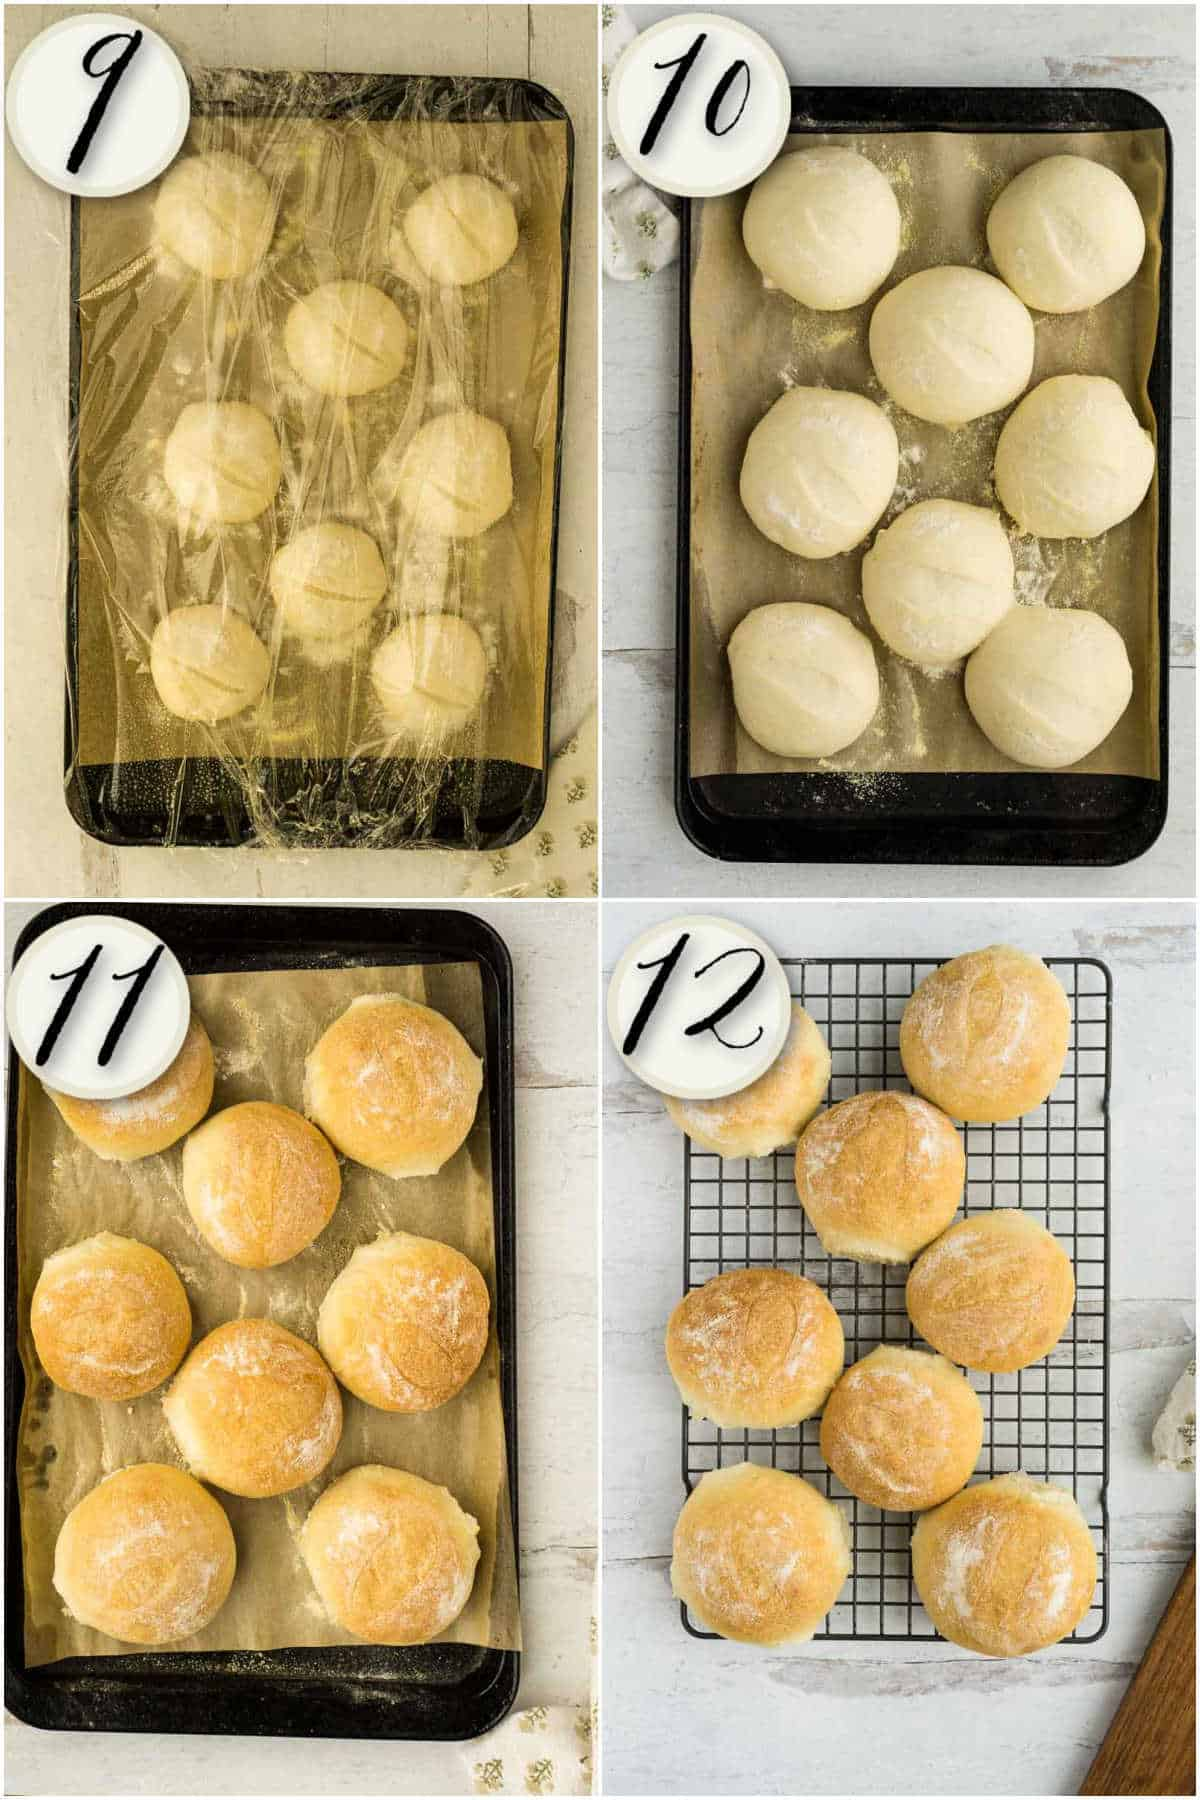 risen rolls. fully baked, and cooling sandwich rolls